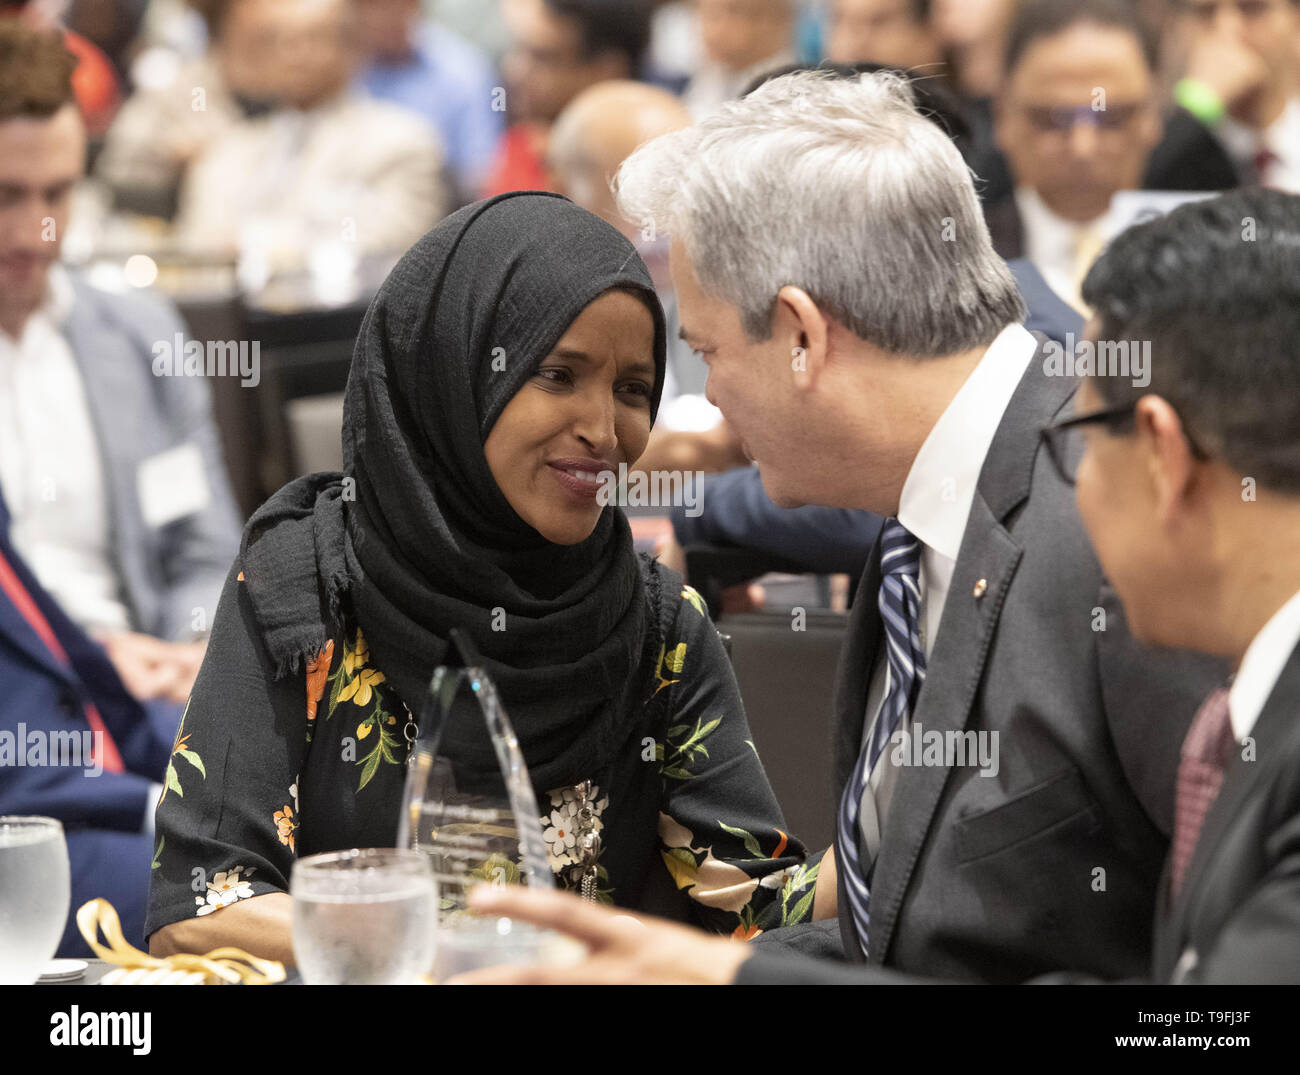 Texas, USA. 18th May, 2019. Congresswoman Ilhan Omar of Minnesota's 5th Congressional District thanks Mayor Steve Adler Austin's annual city-wide iftar dinner in honor of the 14th day of Ramadan. Omar was joined by Adler, a Jew, to call for peace and harmony in today's divisive climate. Credit: ZUMA Press, Inc./Alamy Live News - Stock Image